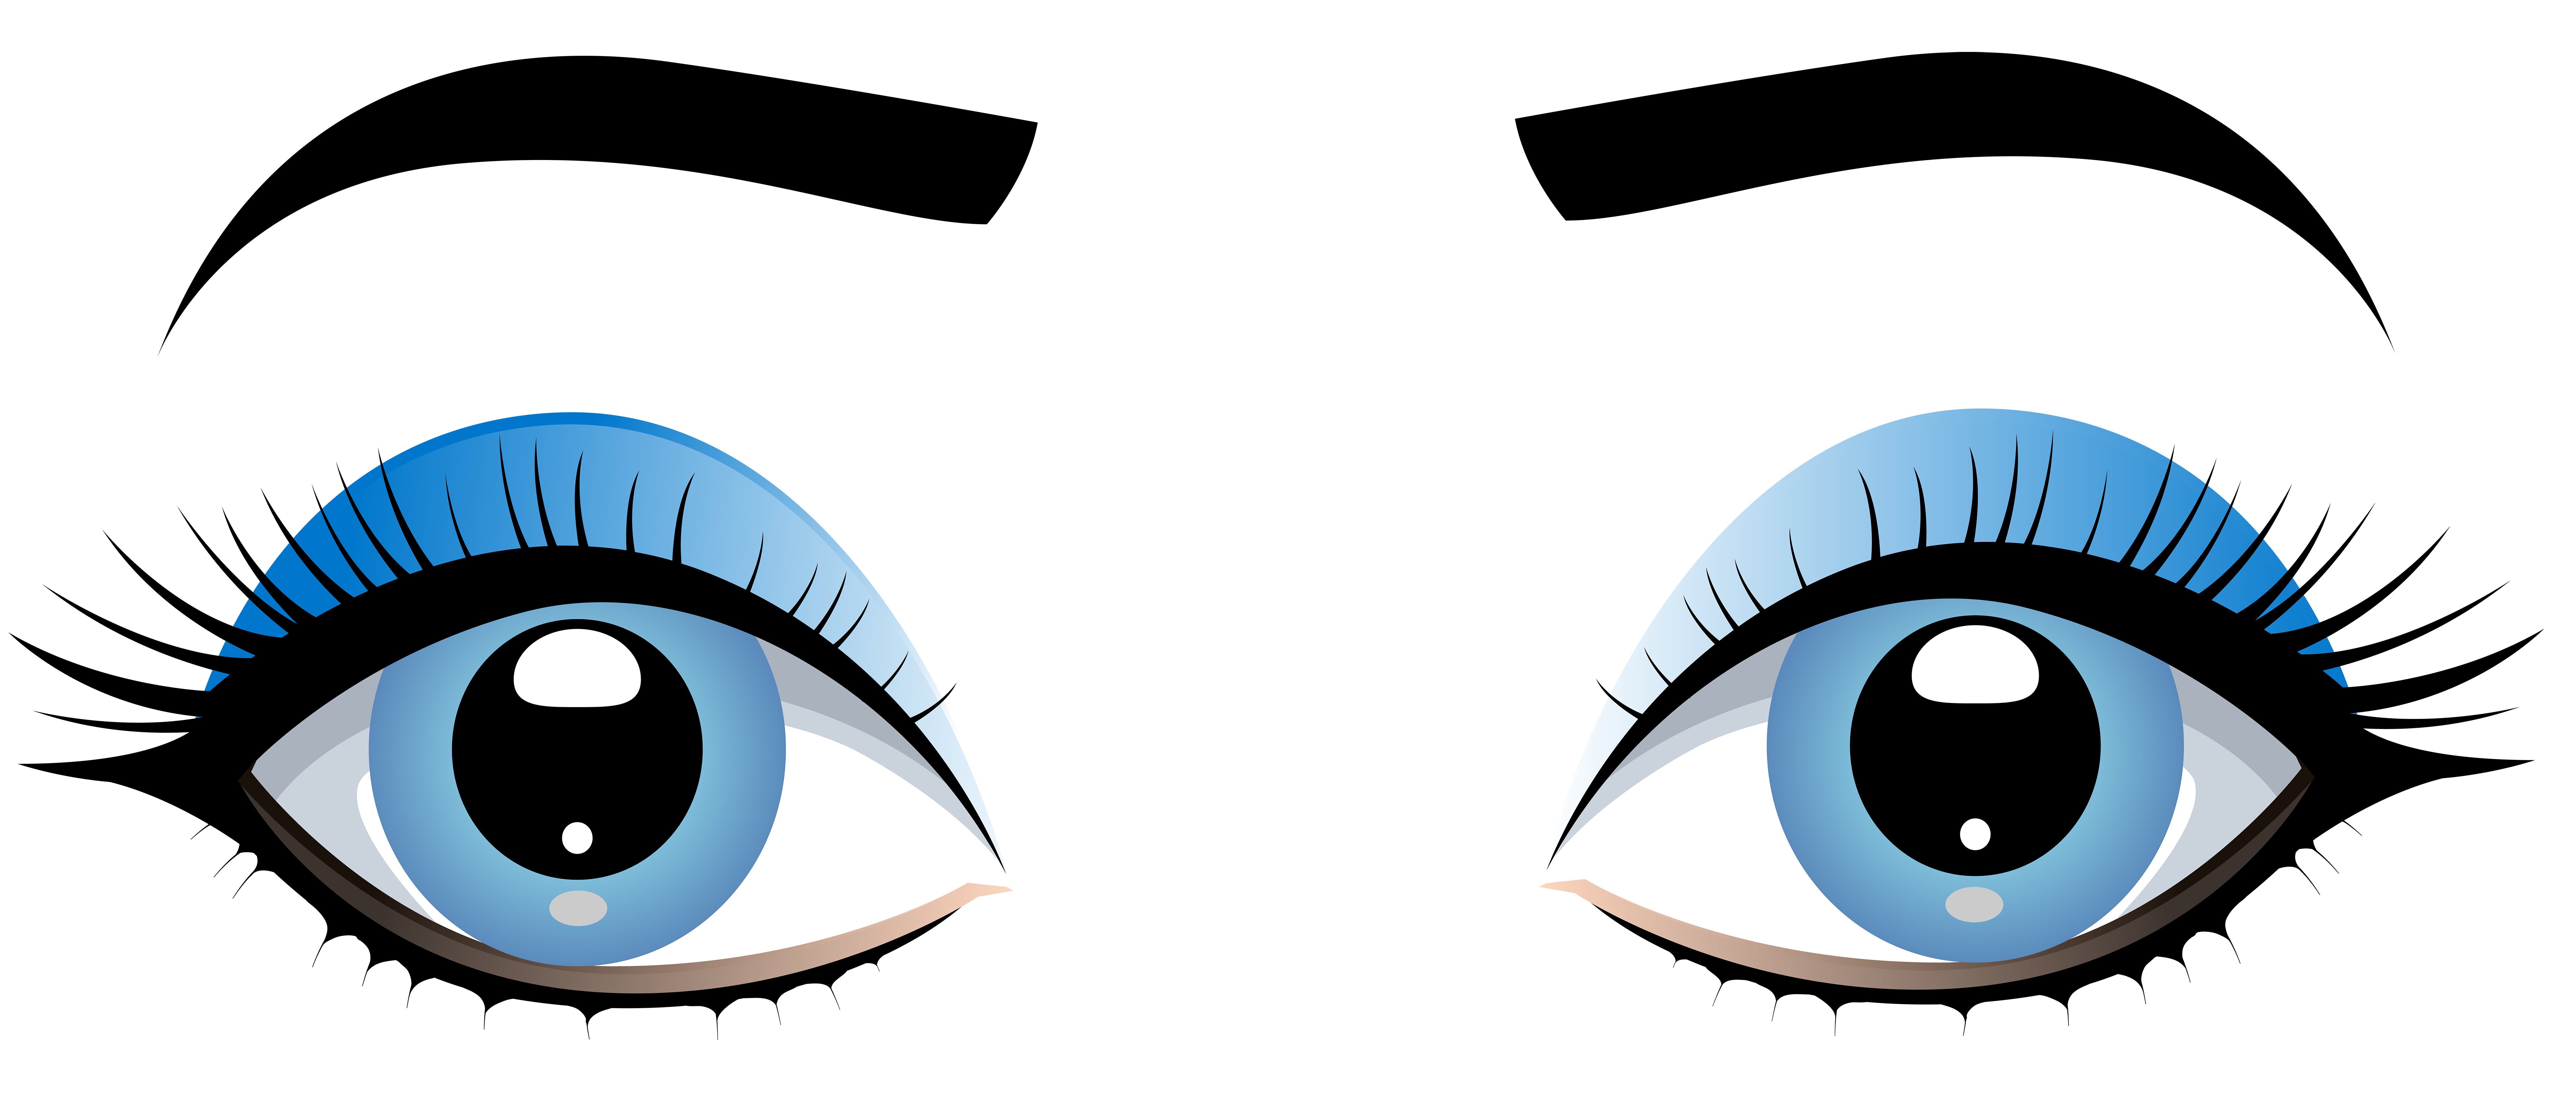 banner download Blue Female Eyes with Eyebrows PNG Clip Art